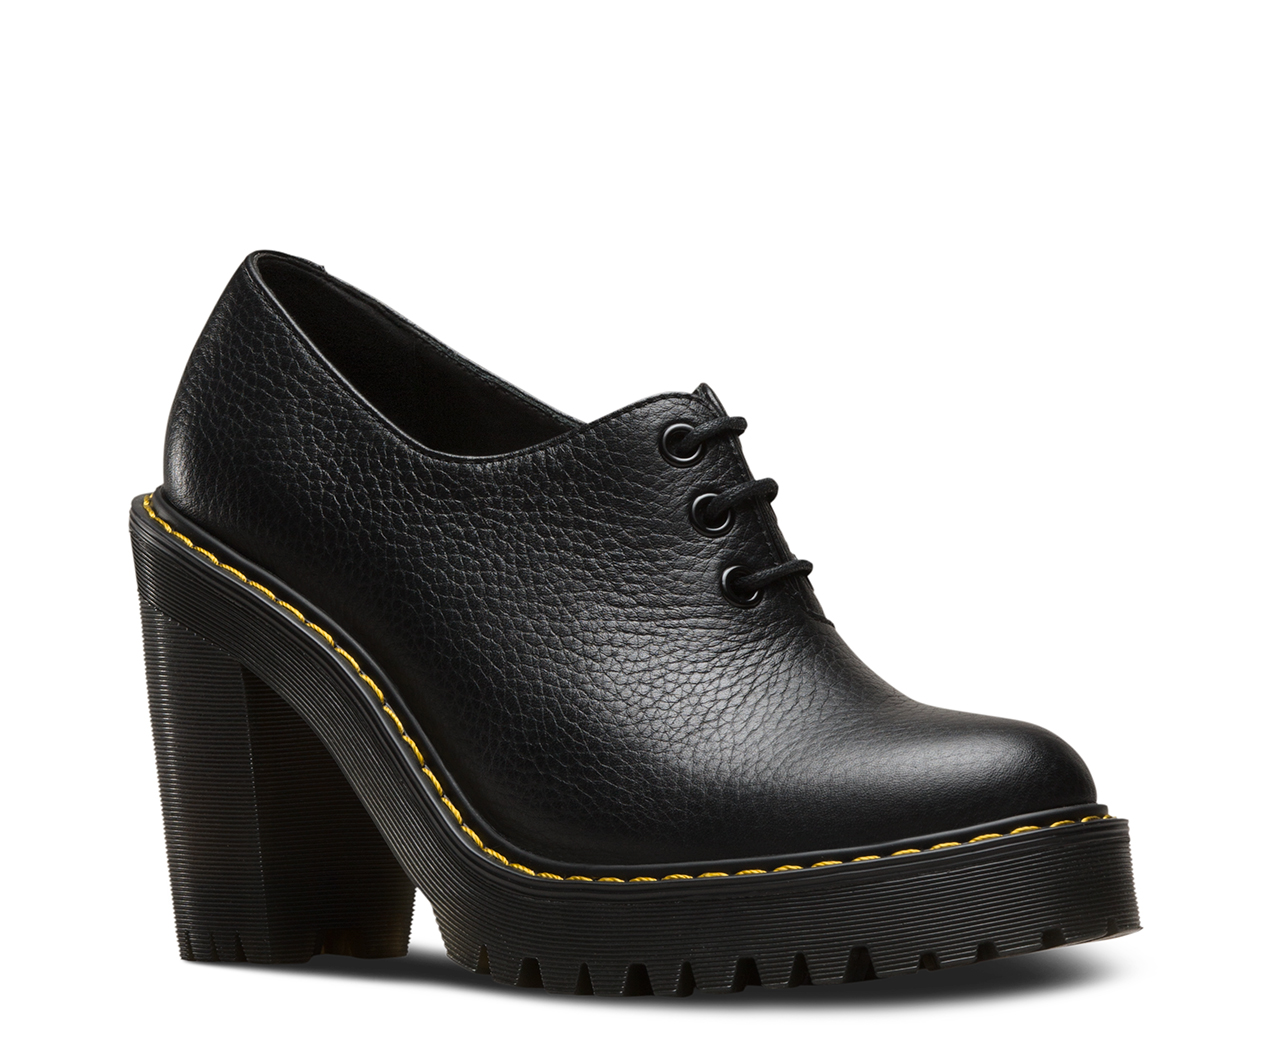 Shoes Salome Store Ii The Official Womens Martens Fr Dr qqF6E